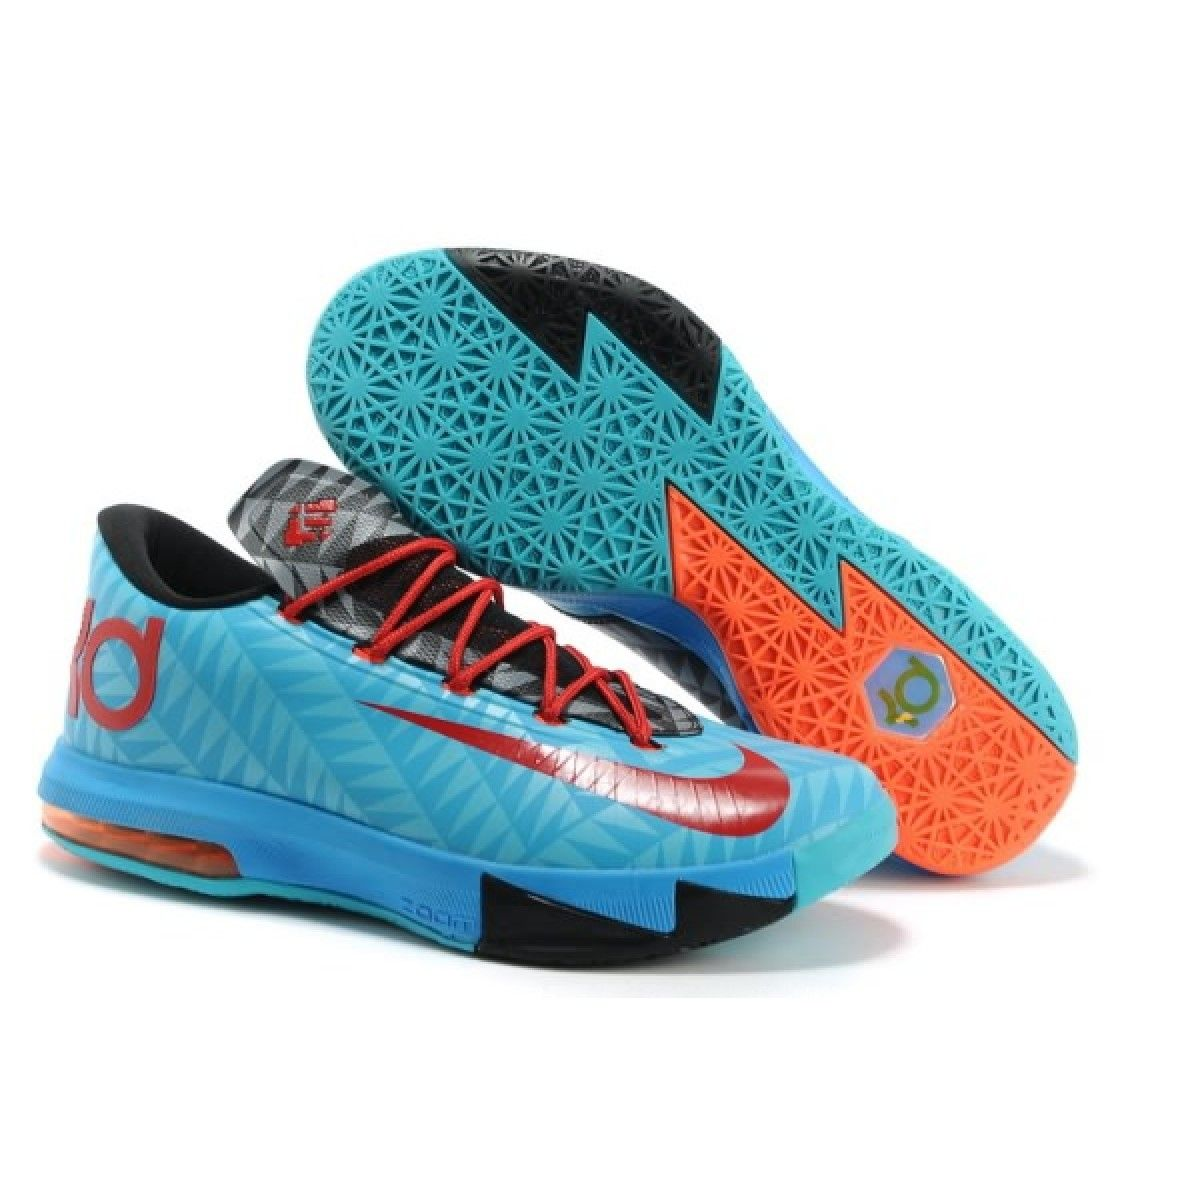 discover the nike kevin durant kd 6 vi dark turquoise university red black for sale super deals 3123